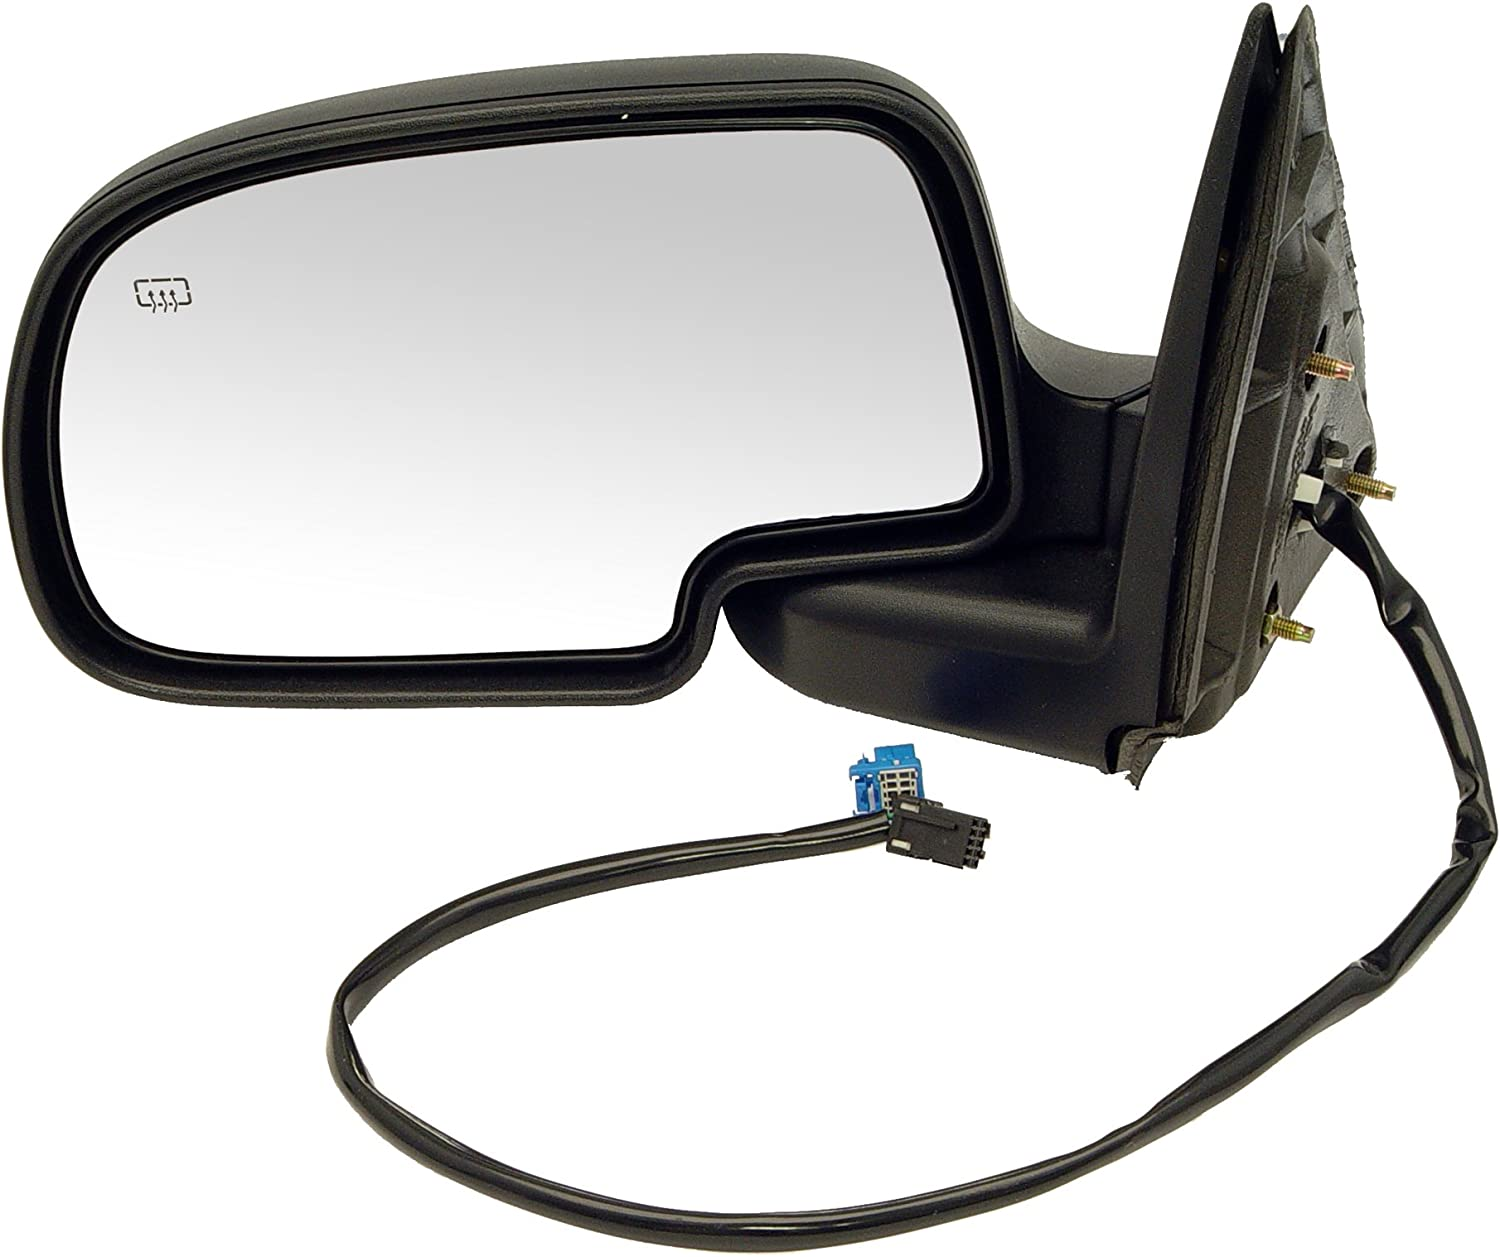 Dorman 955-1534 Toyota Sienna Driver Side Power Heated Replacement Side View Mirror